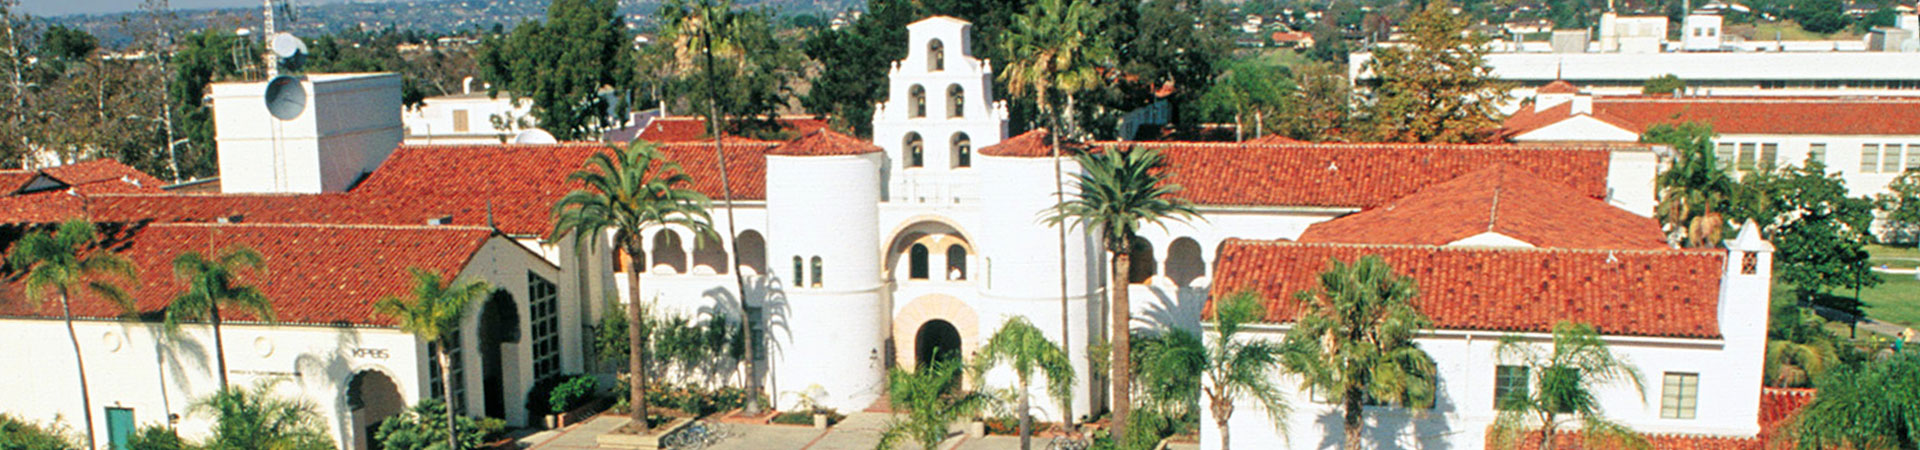 hepner-hall